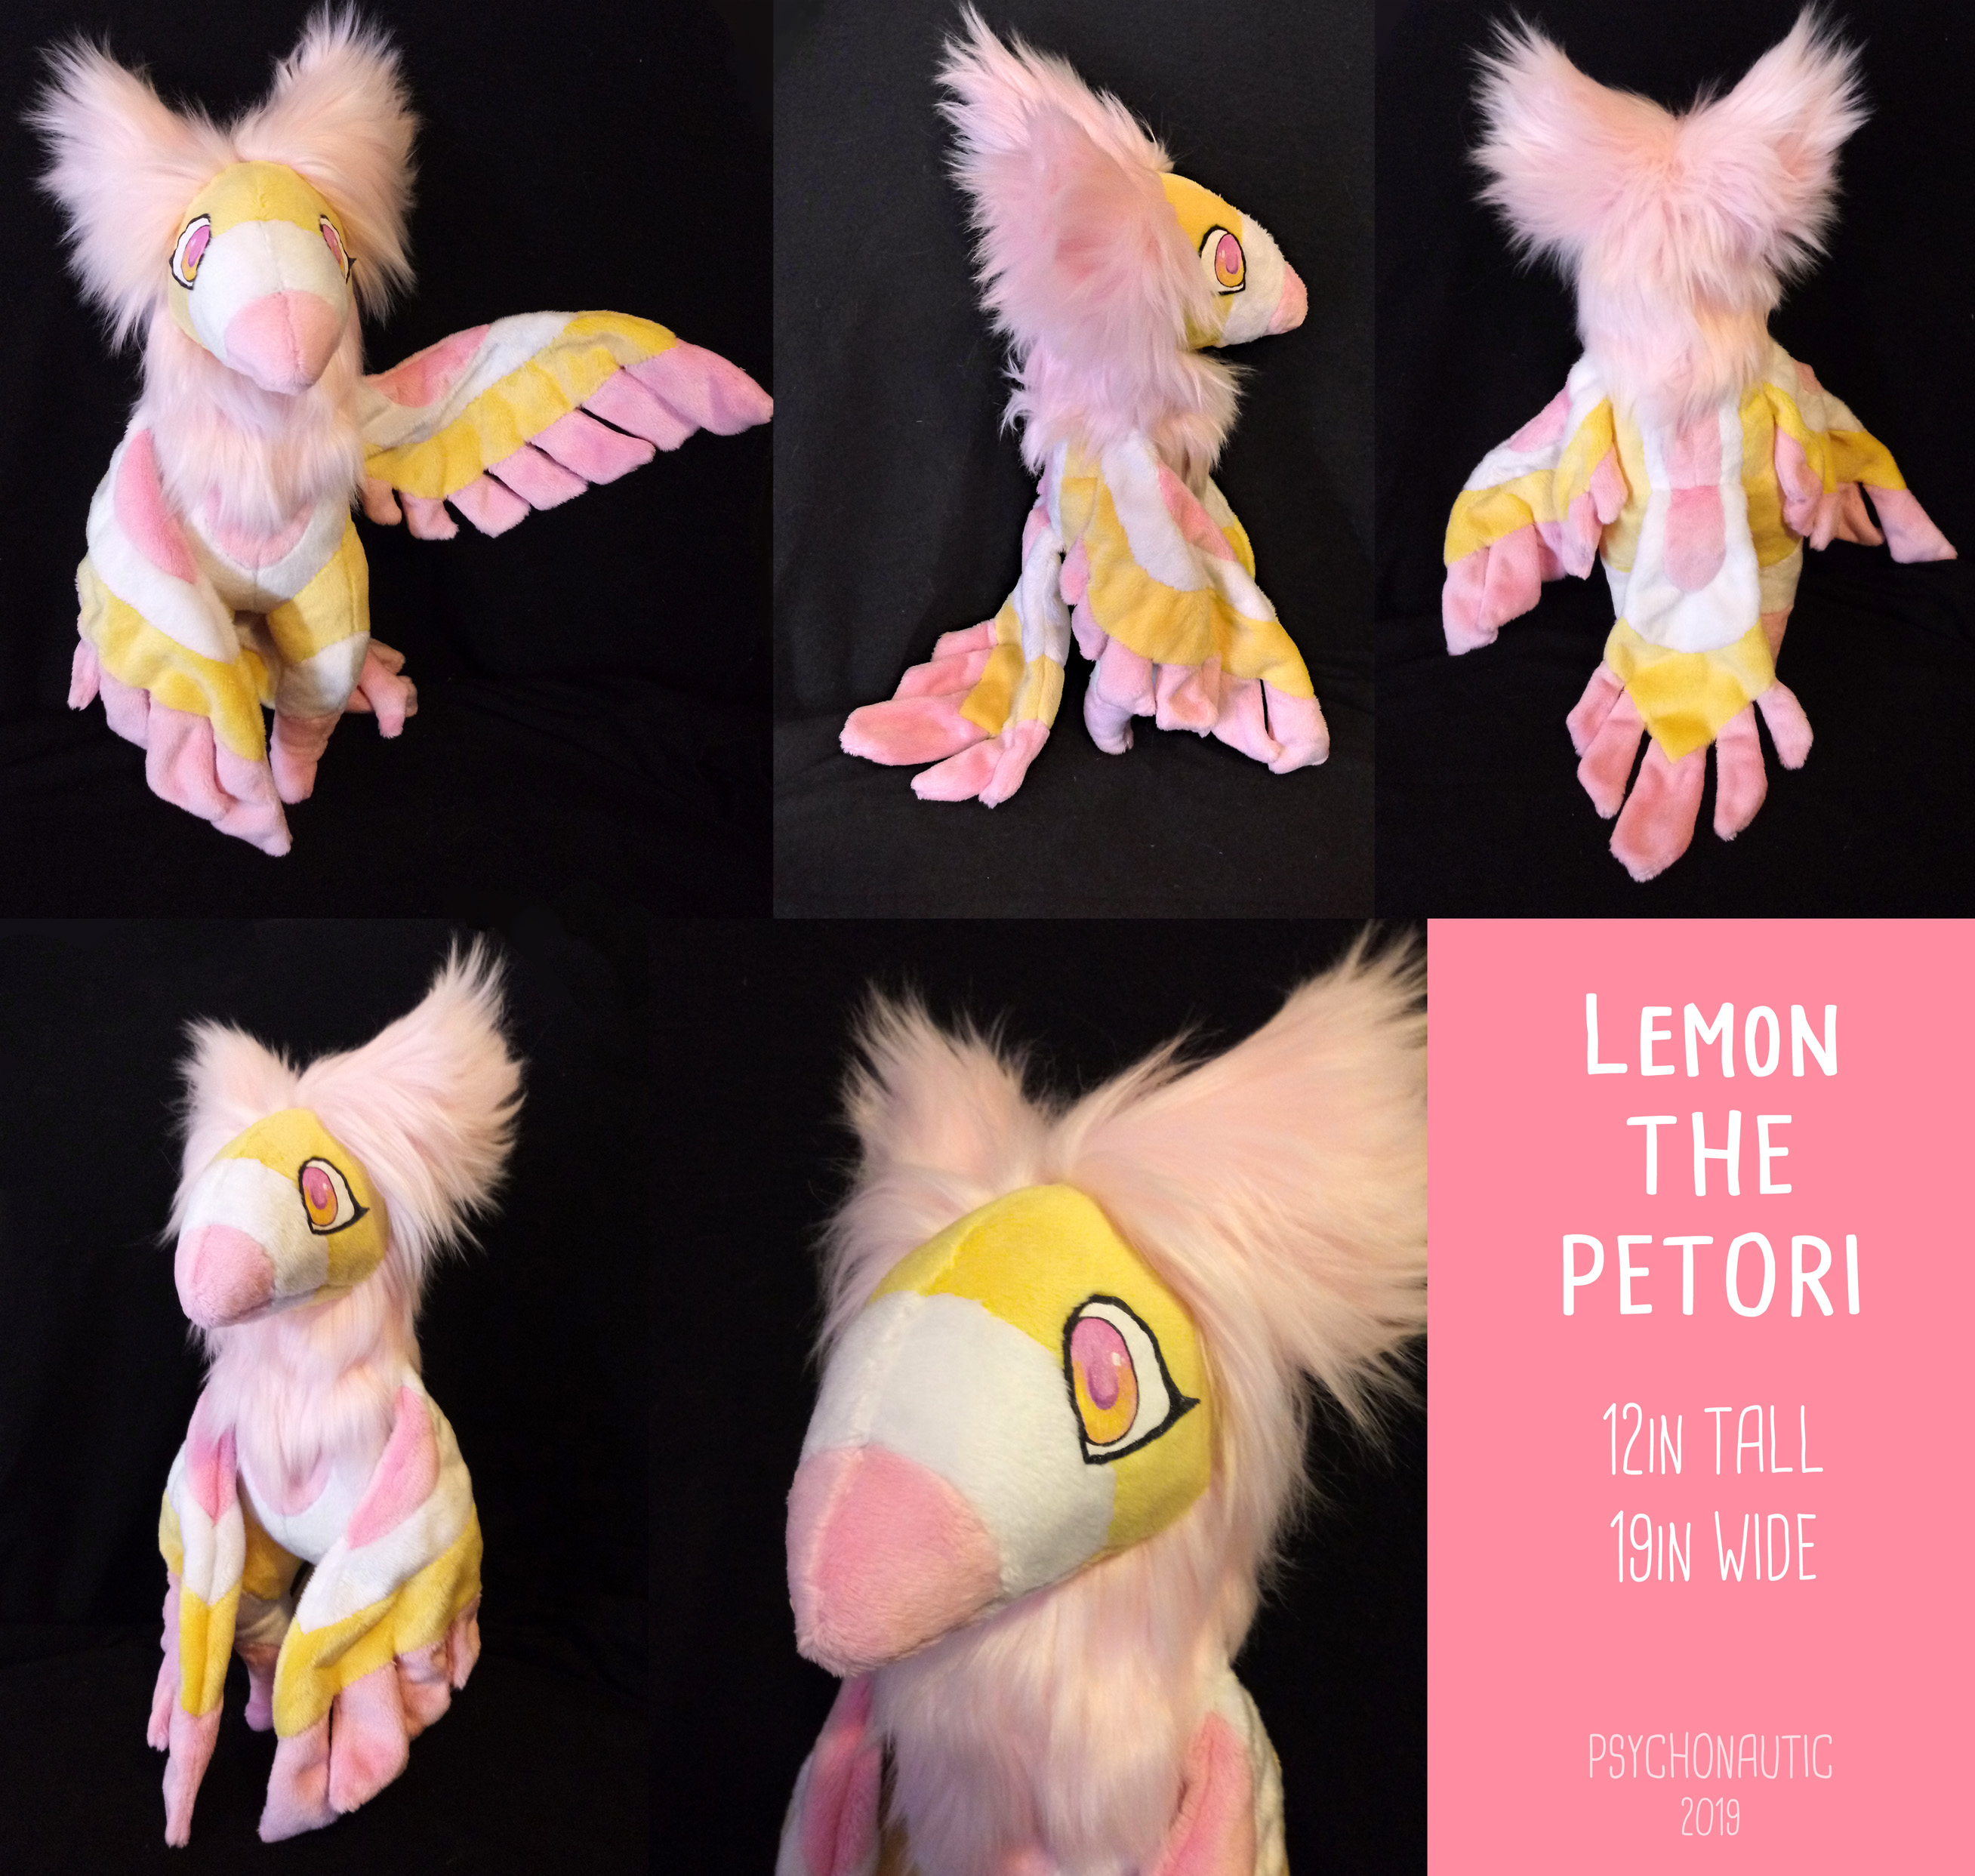 Lemon the Petori